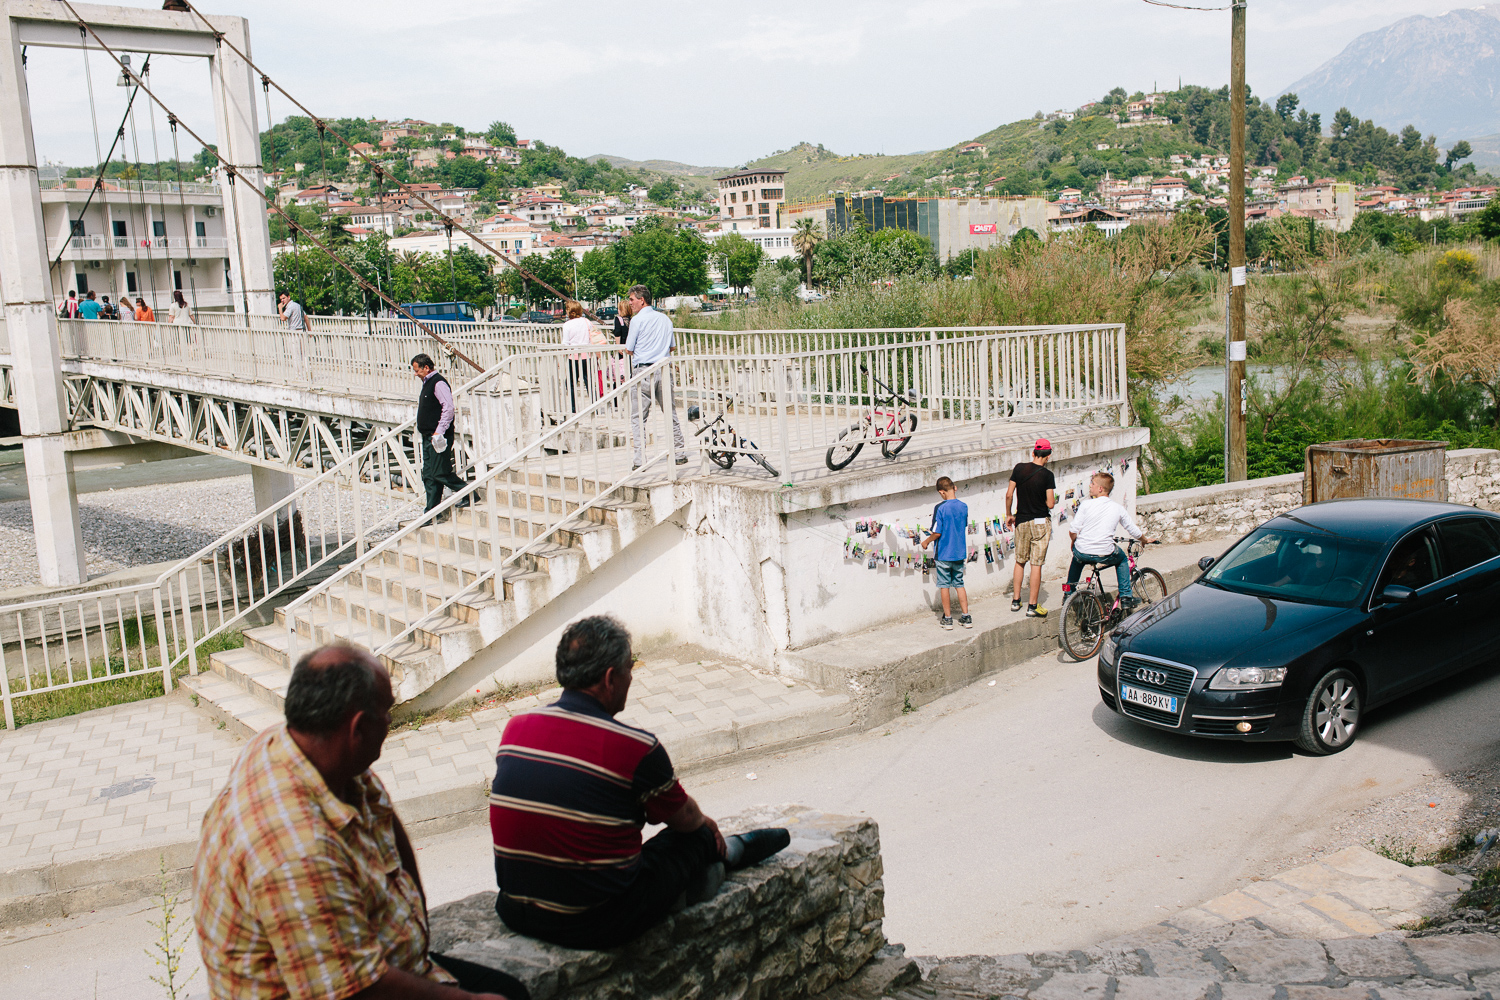 Street-exhibition-Albania-Atte-Tanner-Photography-3.jpg